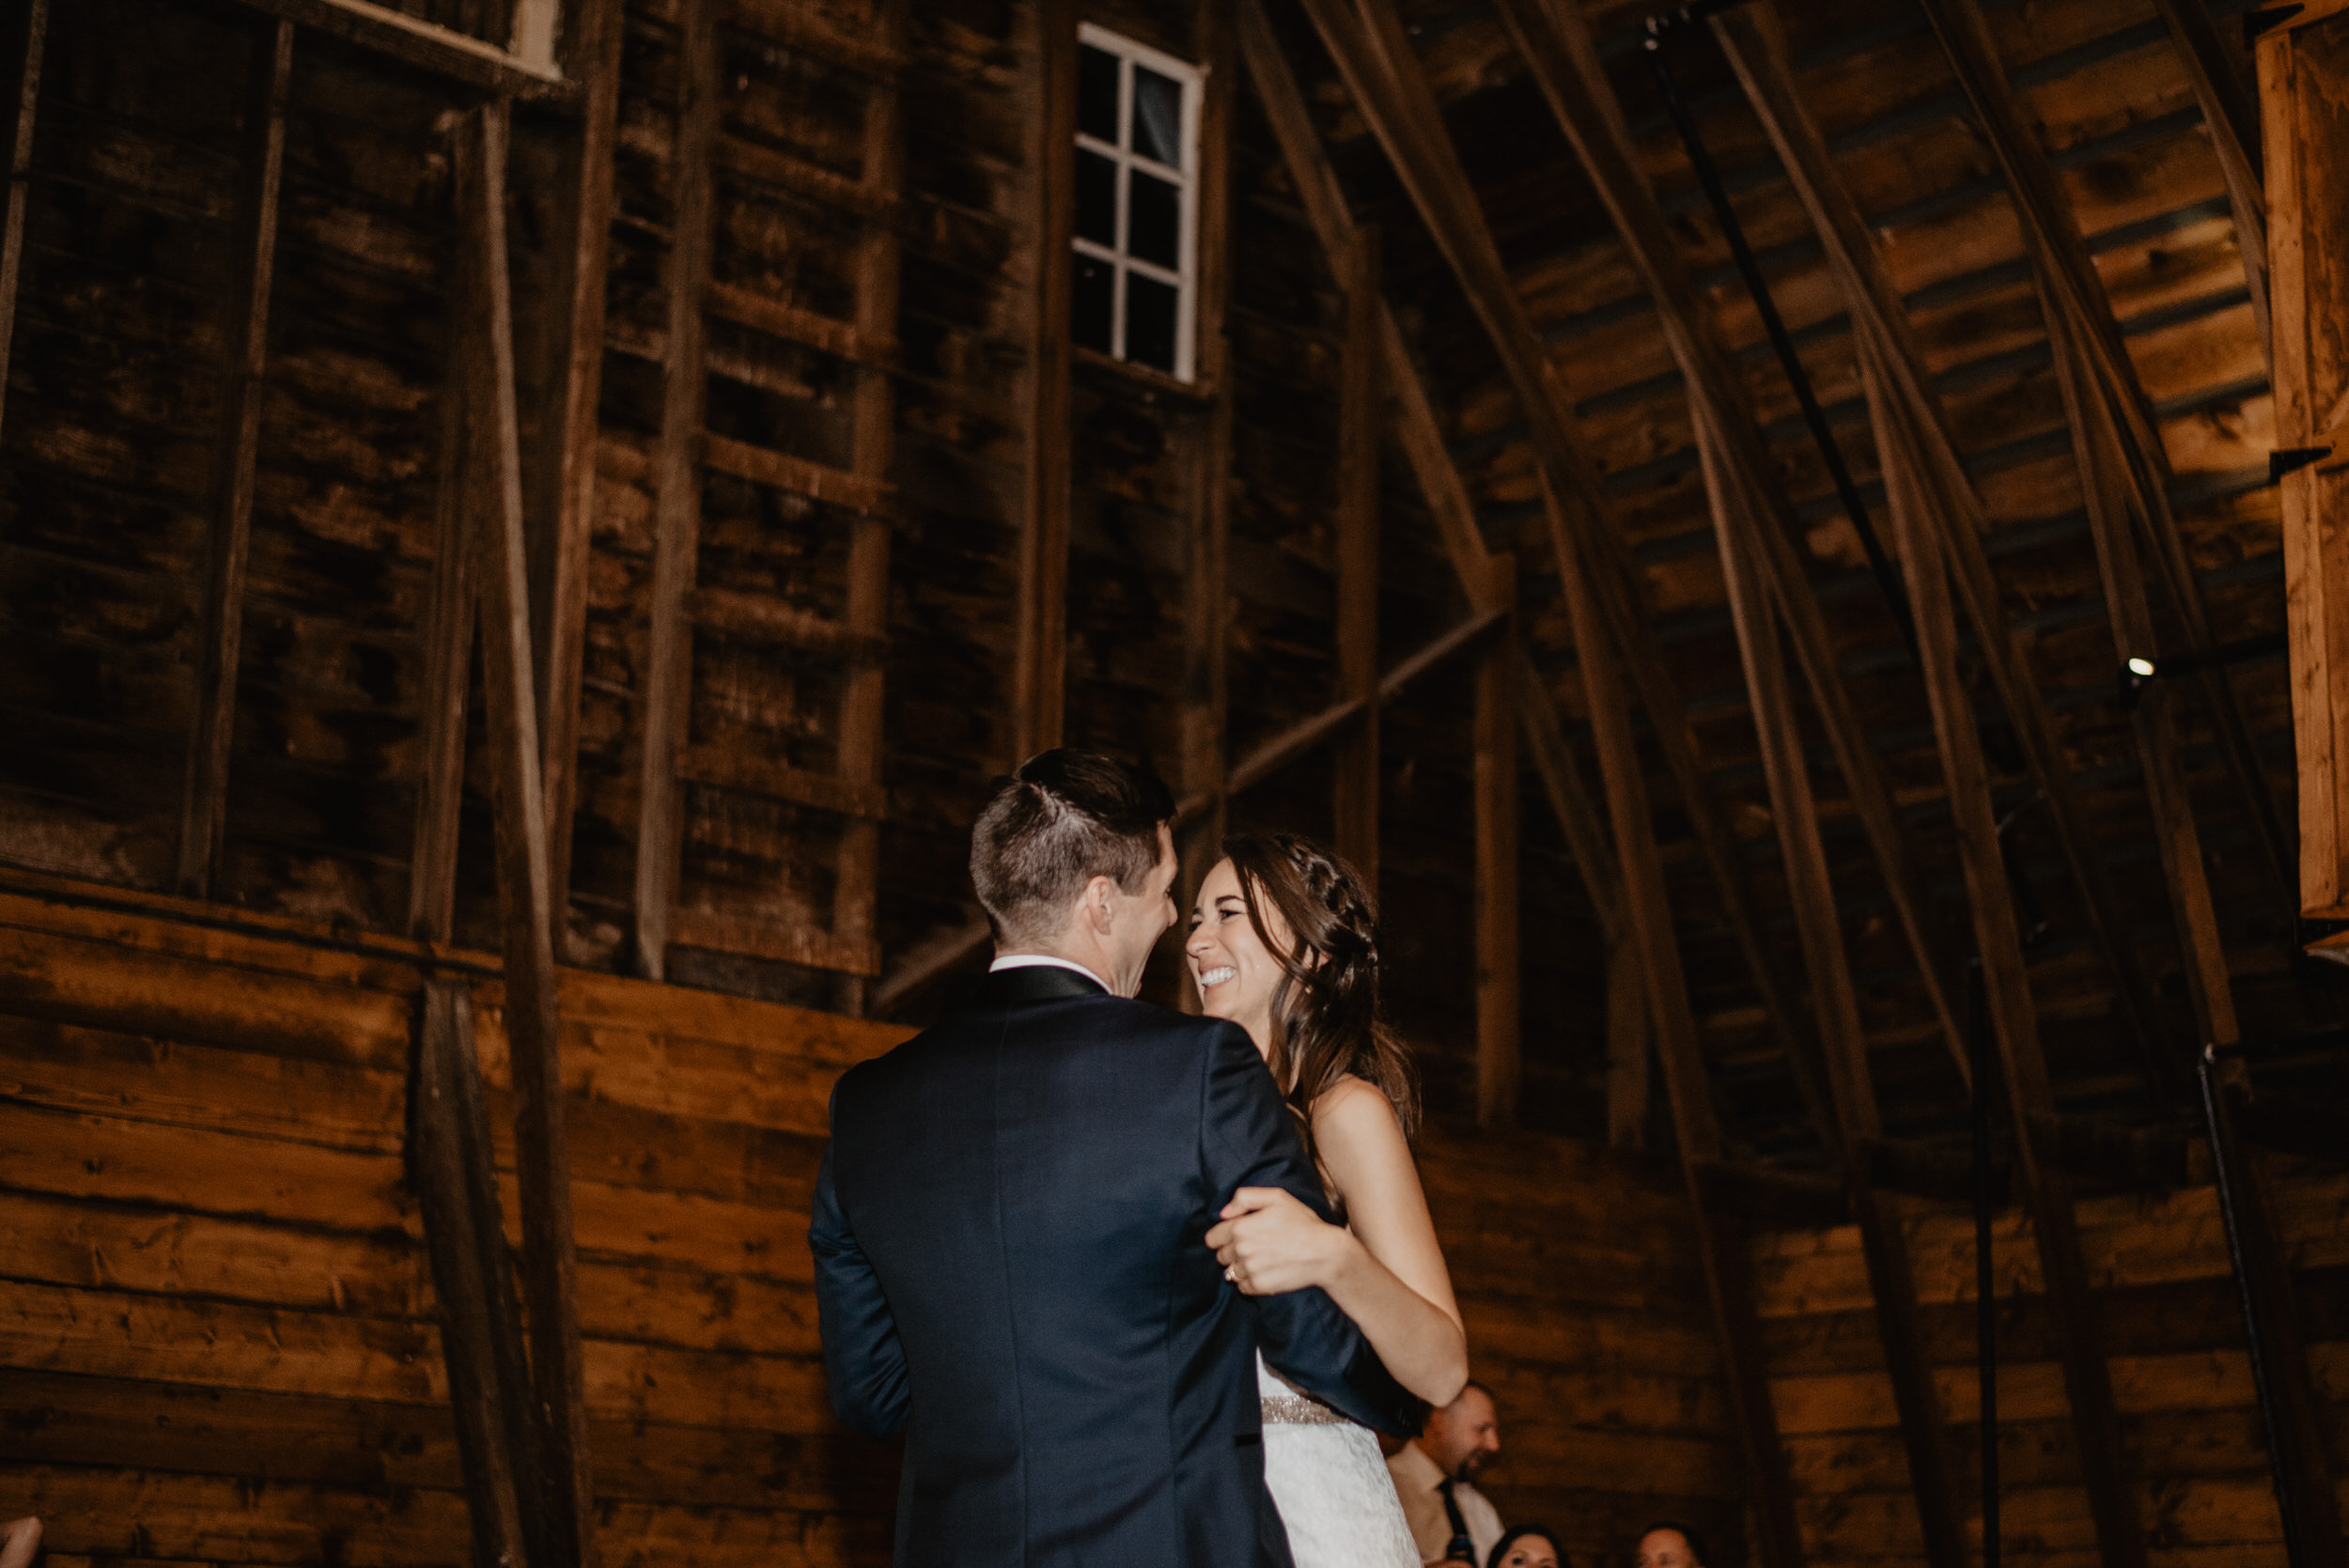 The Barn at the Ackerhurst Dairy Farm Omaha Nebraska Wedding Kaylie Sirek Photography120.jpg